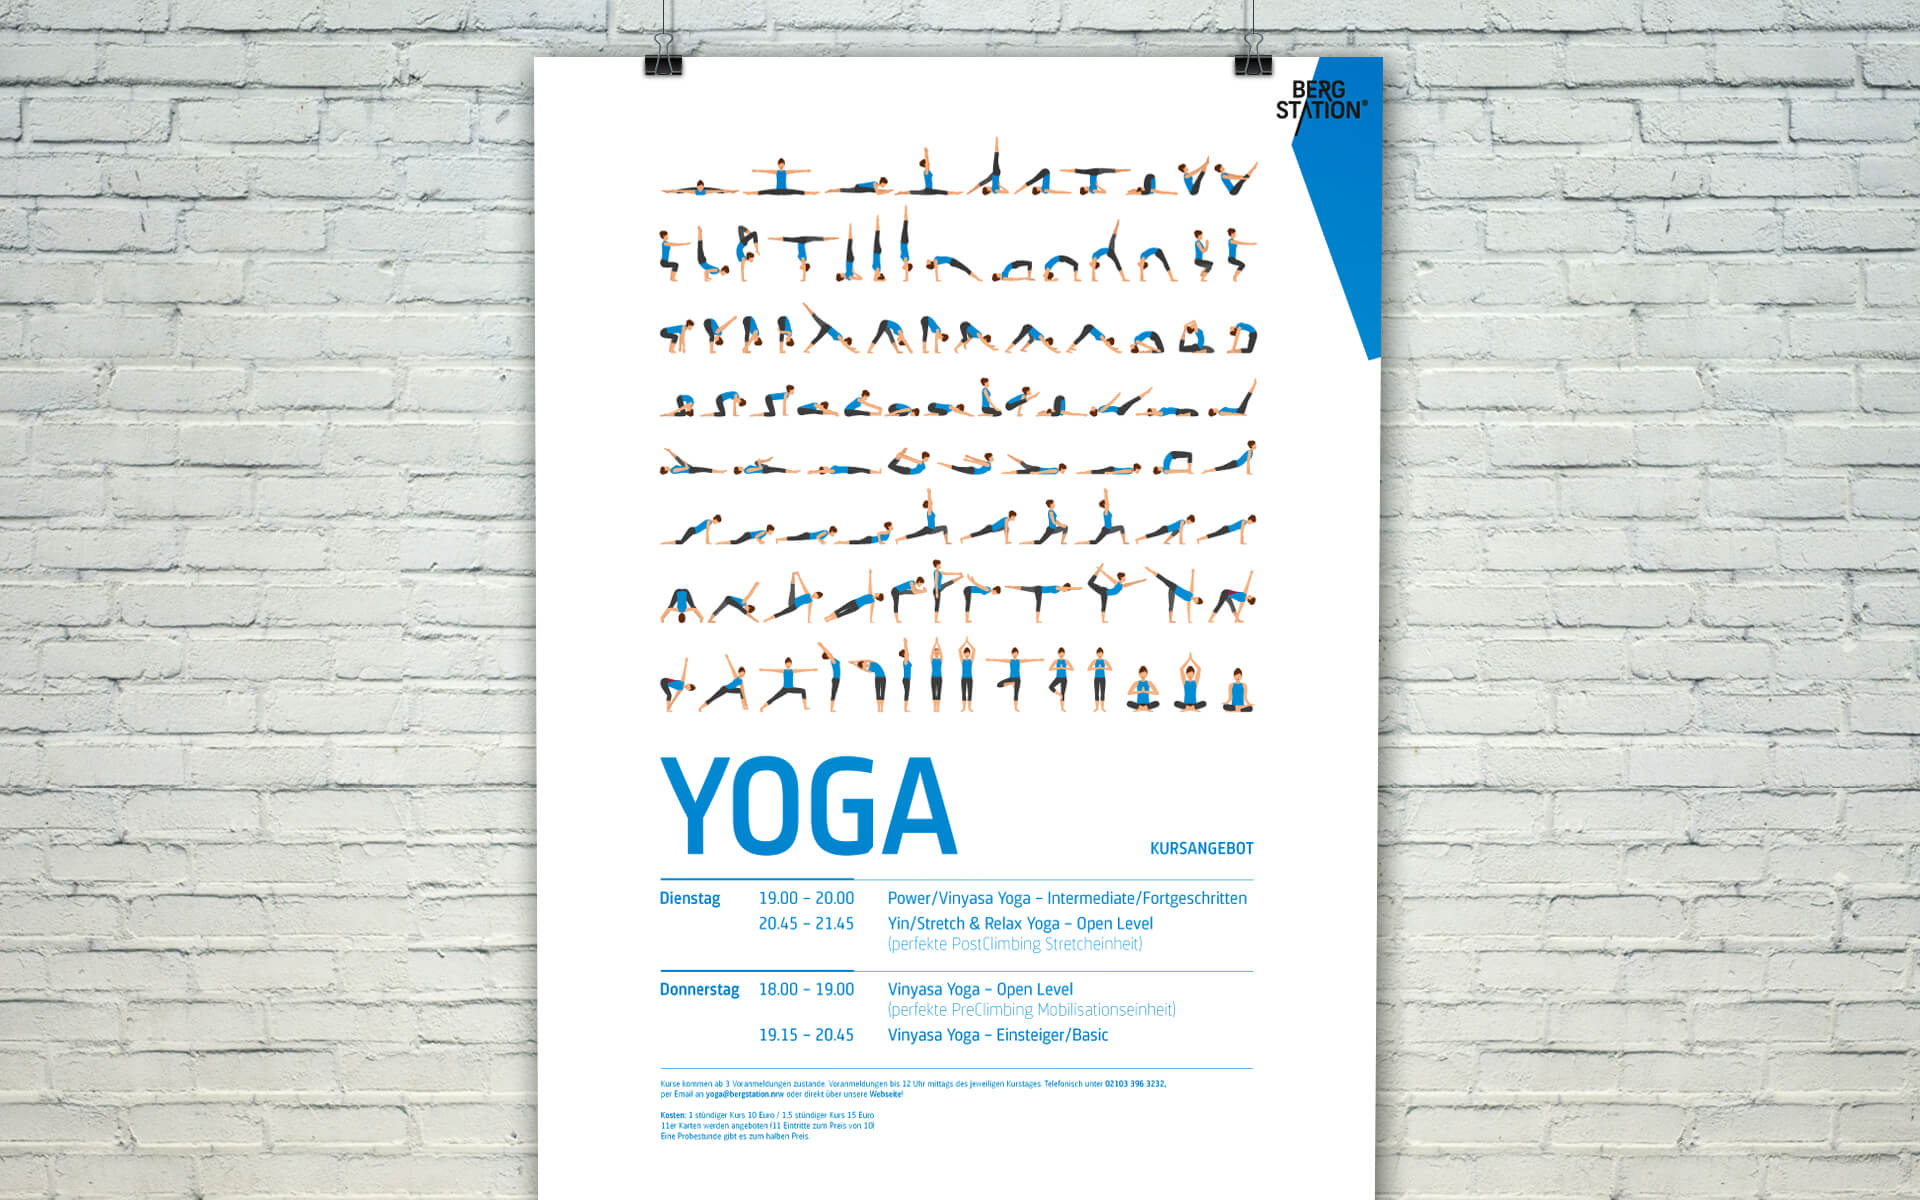 Bergstation Corporate Design, Yoga Plakat